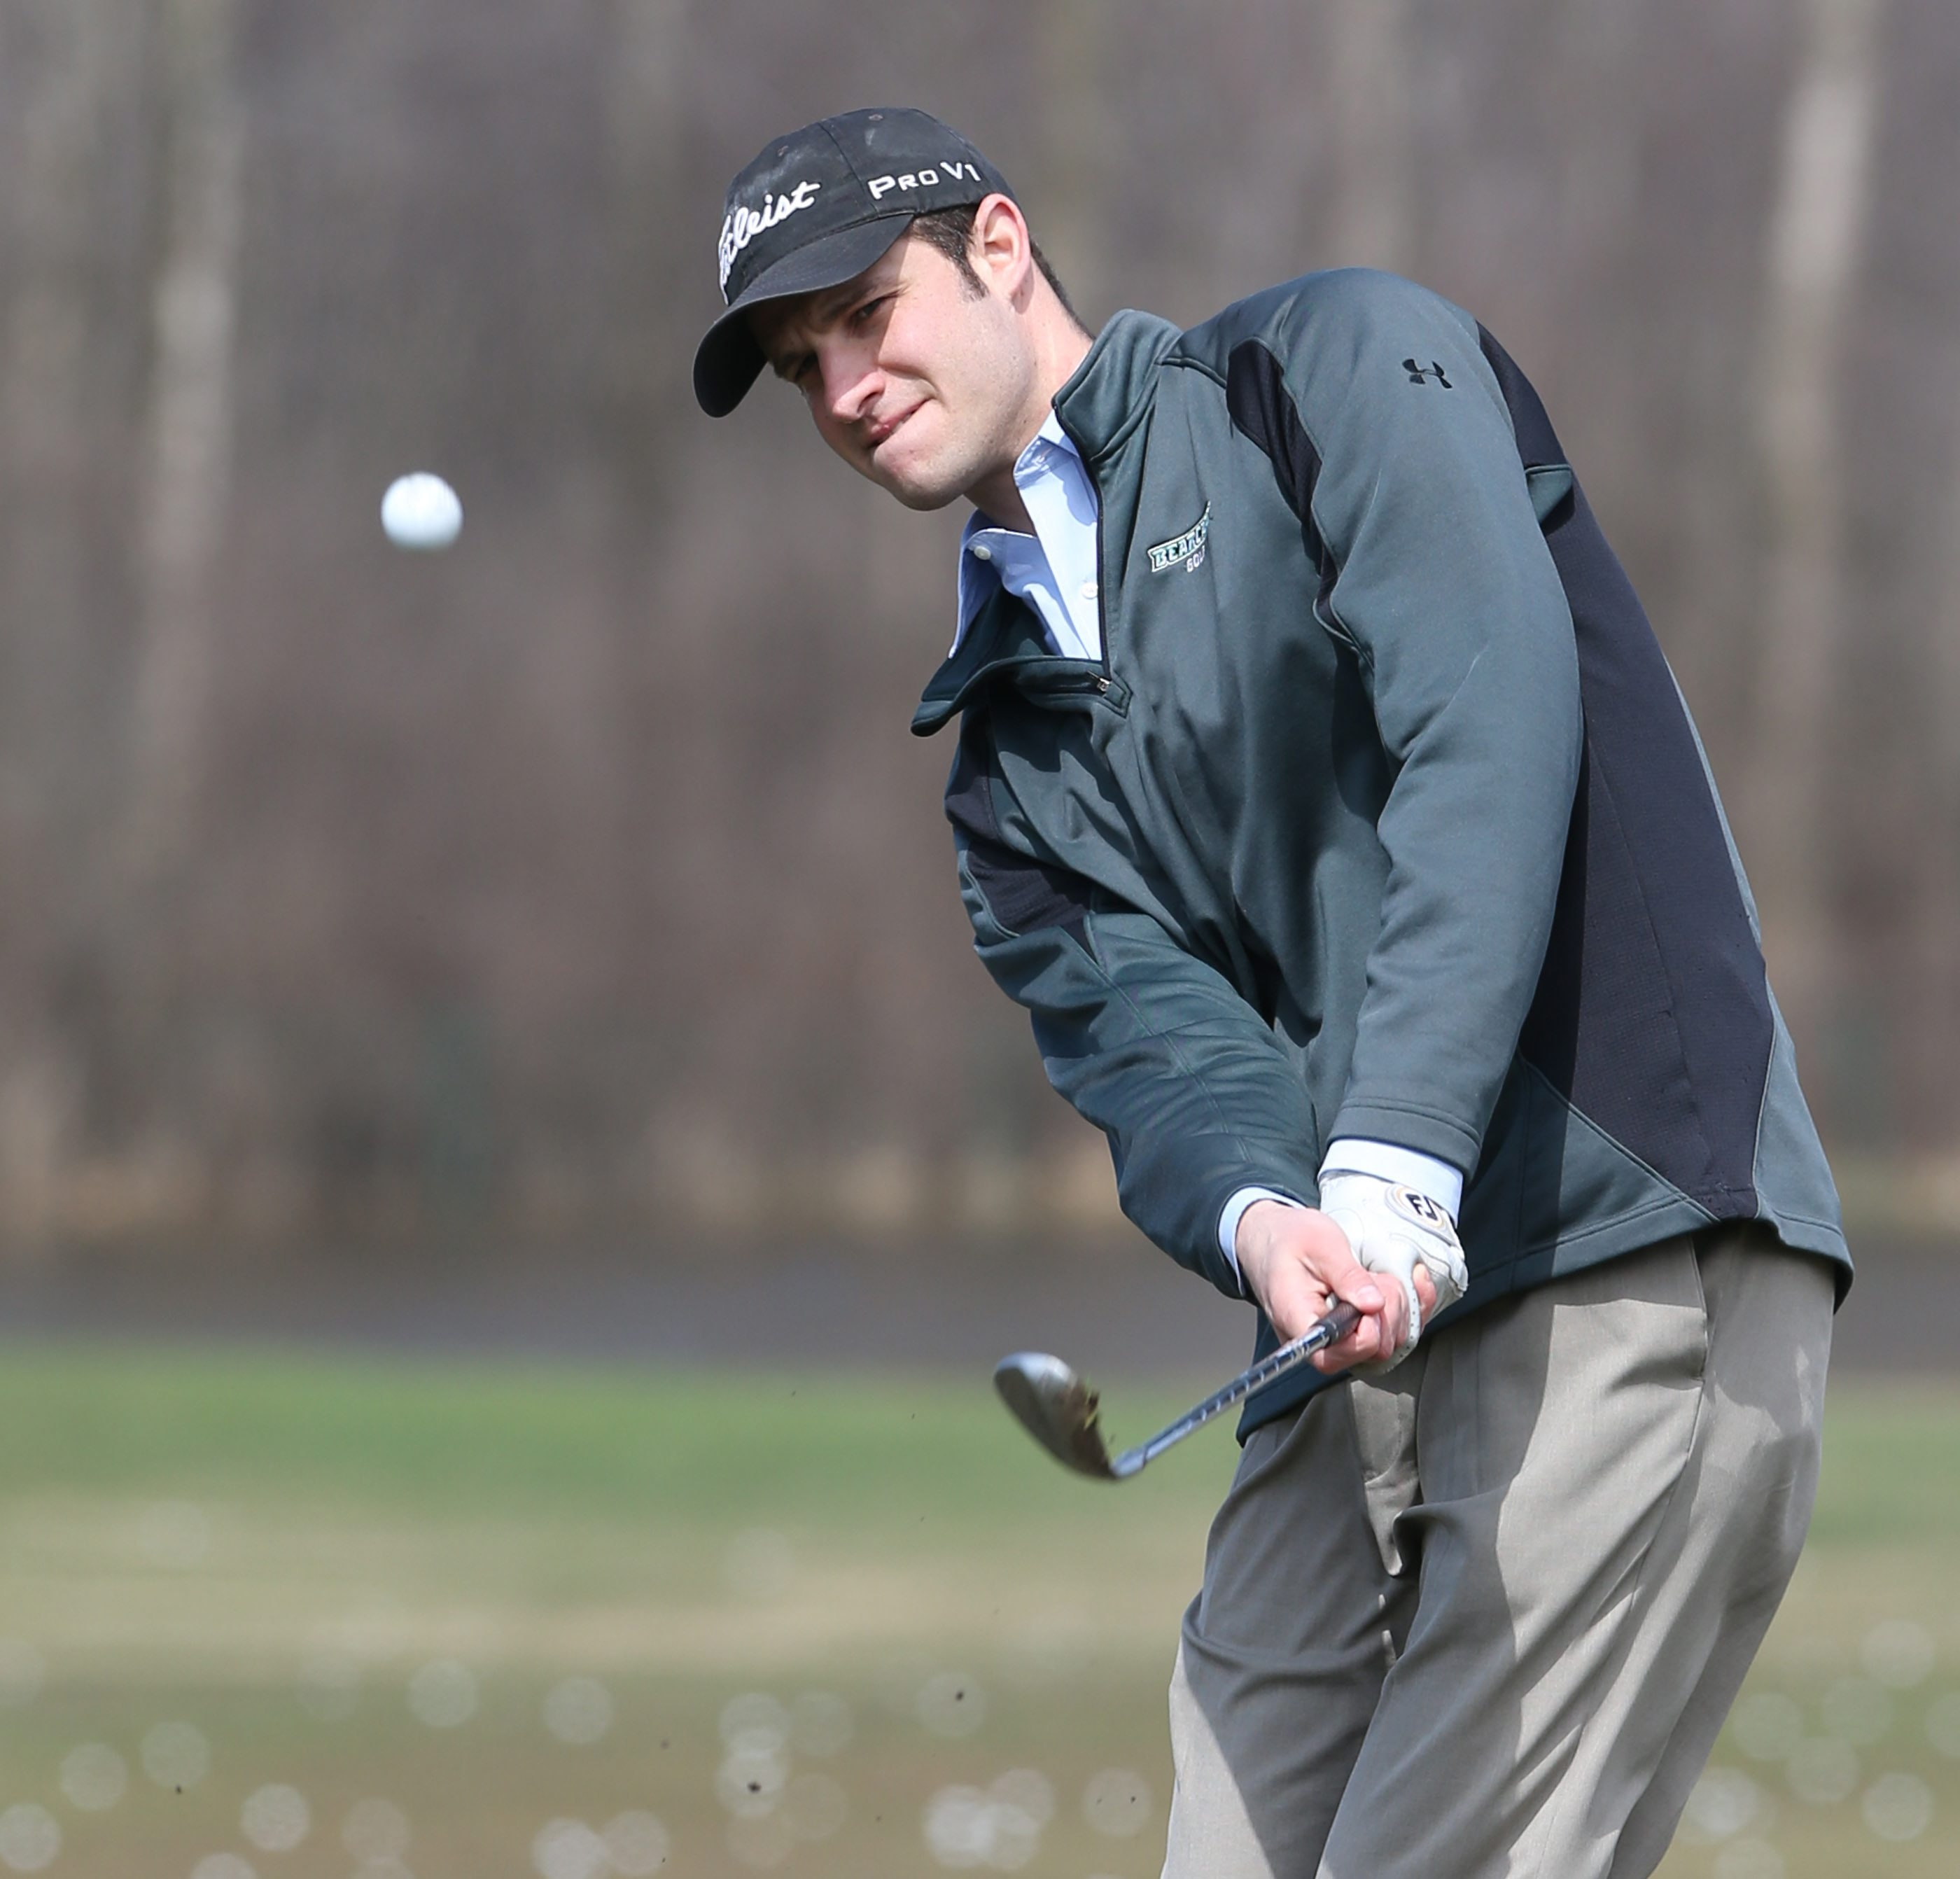 Williamsville's Jake Katz is an amateur again and tied for 10th at the Porter Cup in 2010.